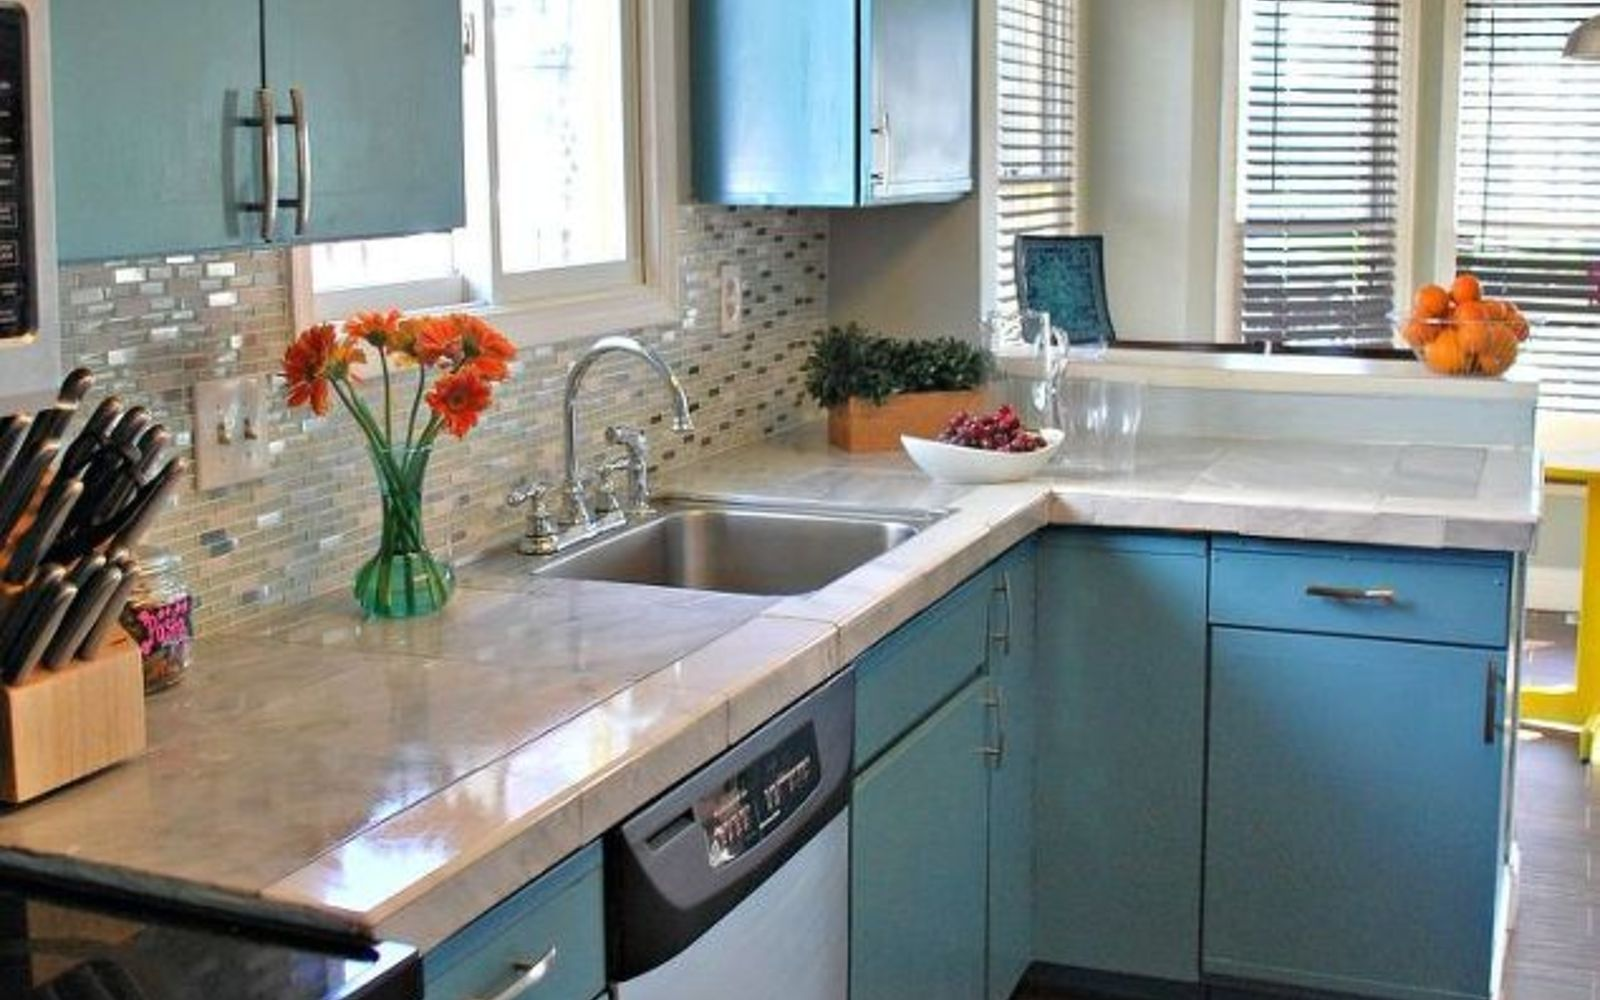 s 13 kitchen paint colors people are pinning like crazy, kitchen design, paint colors, Paint your cabinets cloud blue